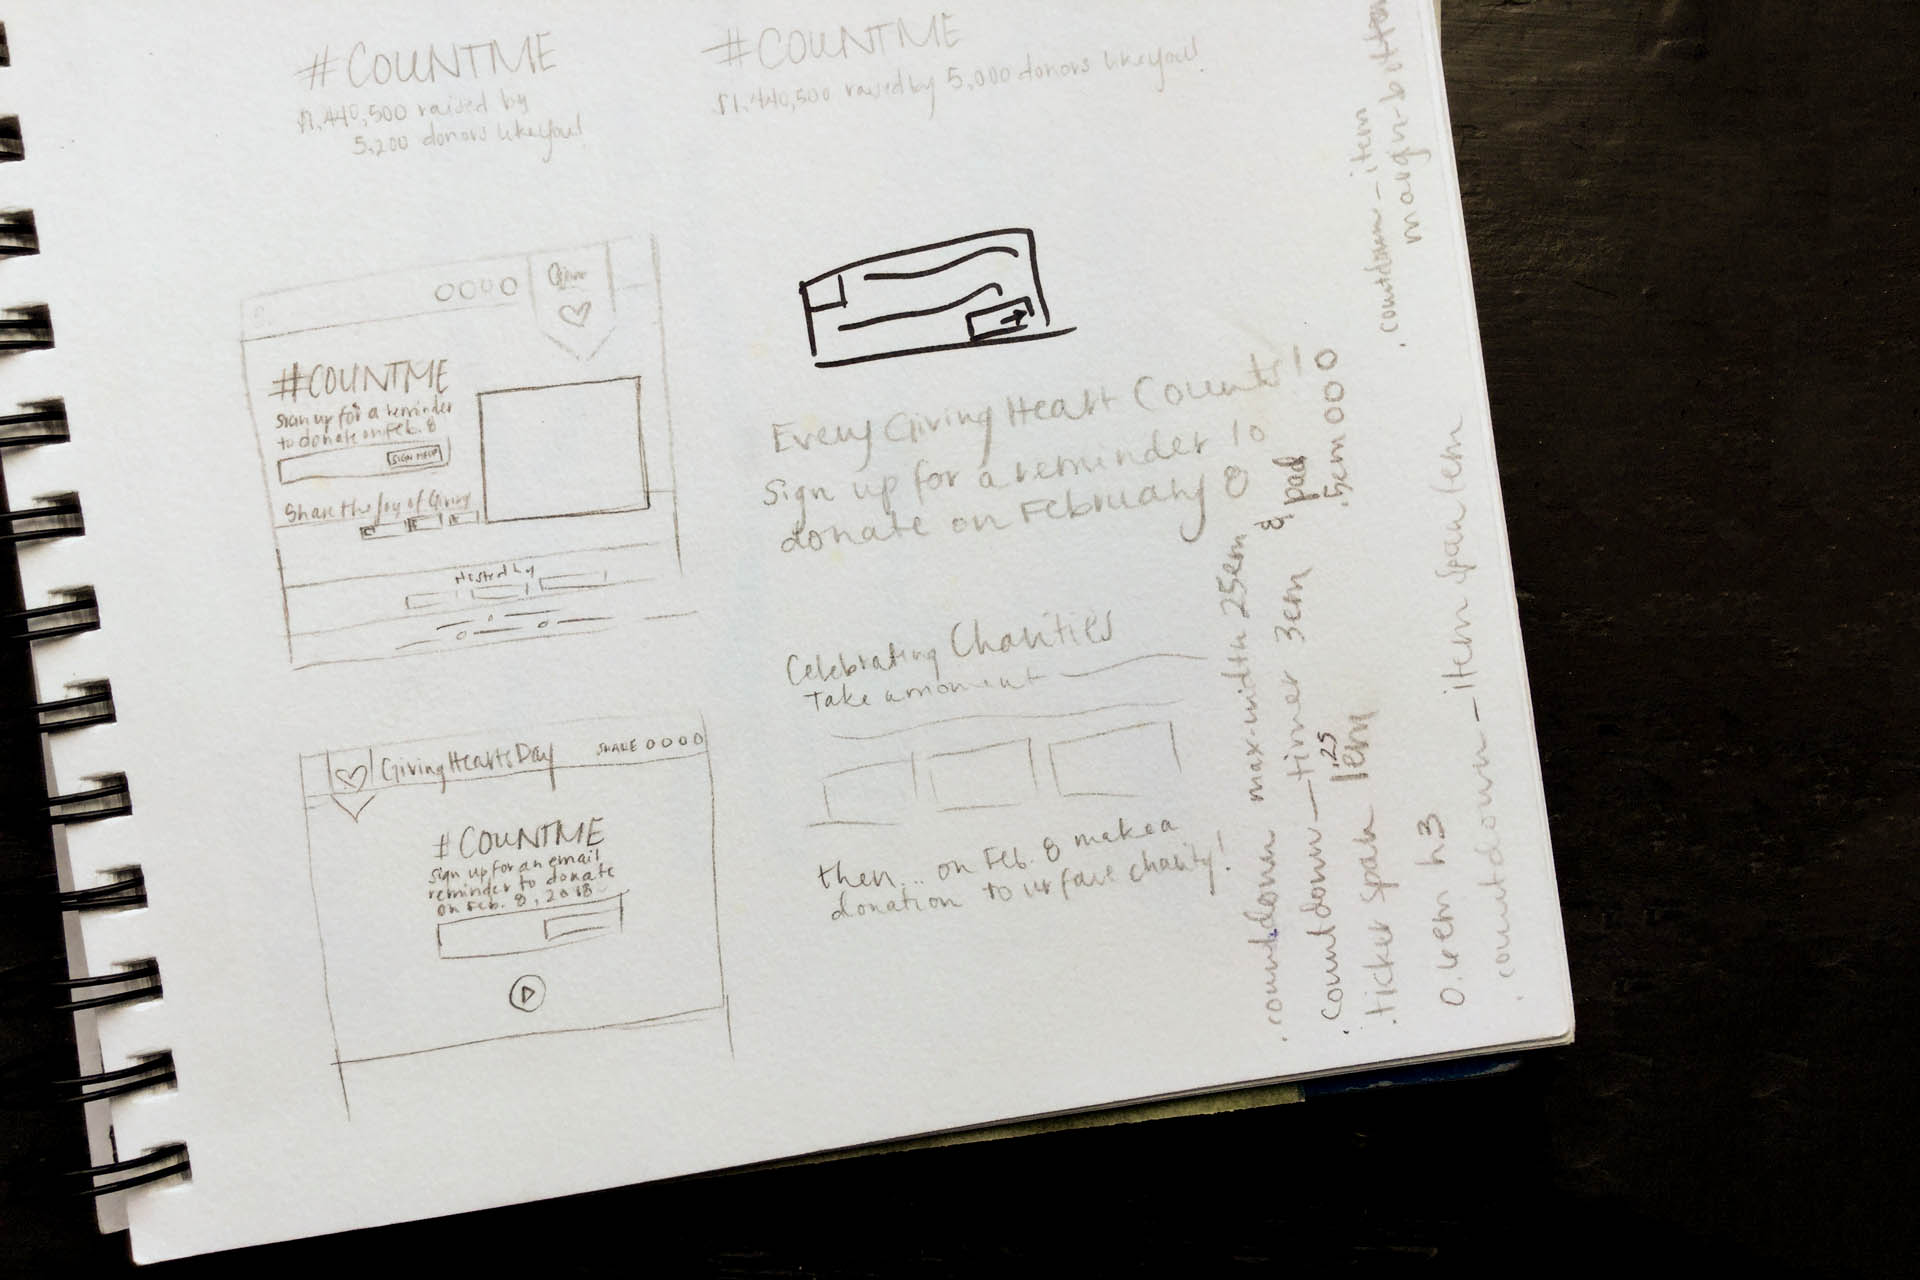 Sketches of wireframe UI